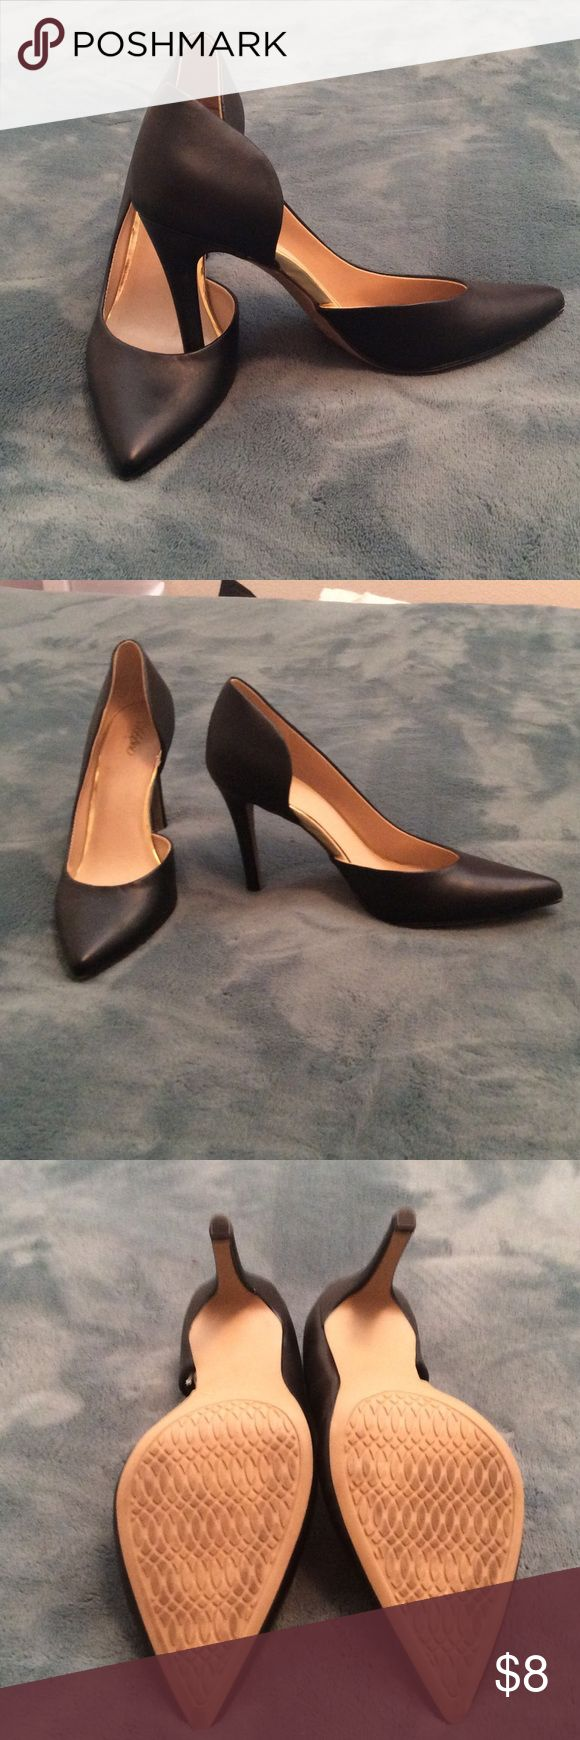 Ladies pumps Black pumps with gold trim. Lightly worn. Mossimo Supply Co Shoes Heels